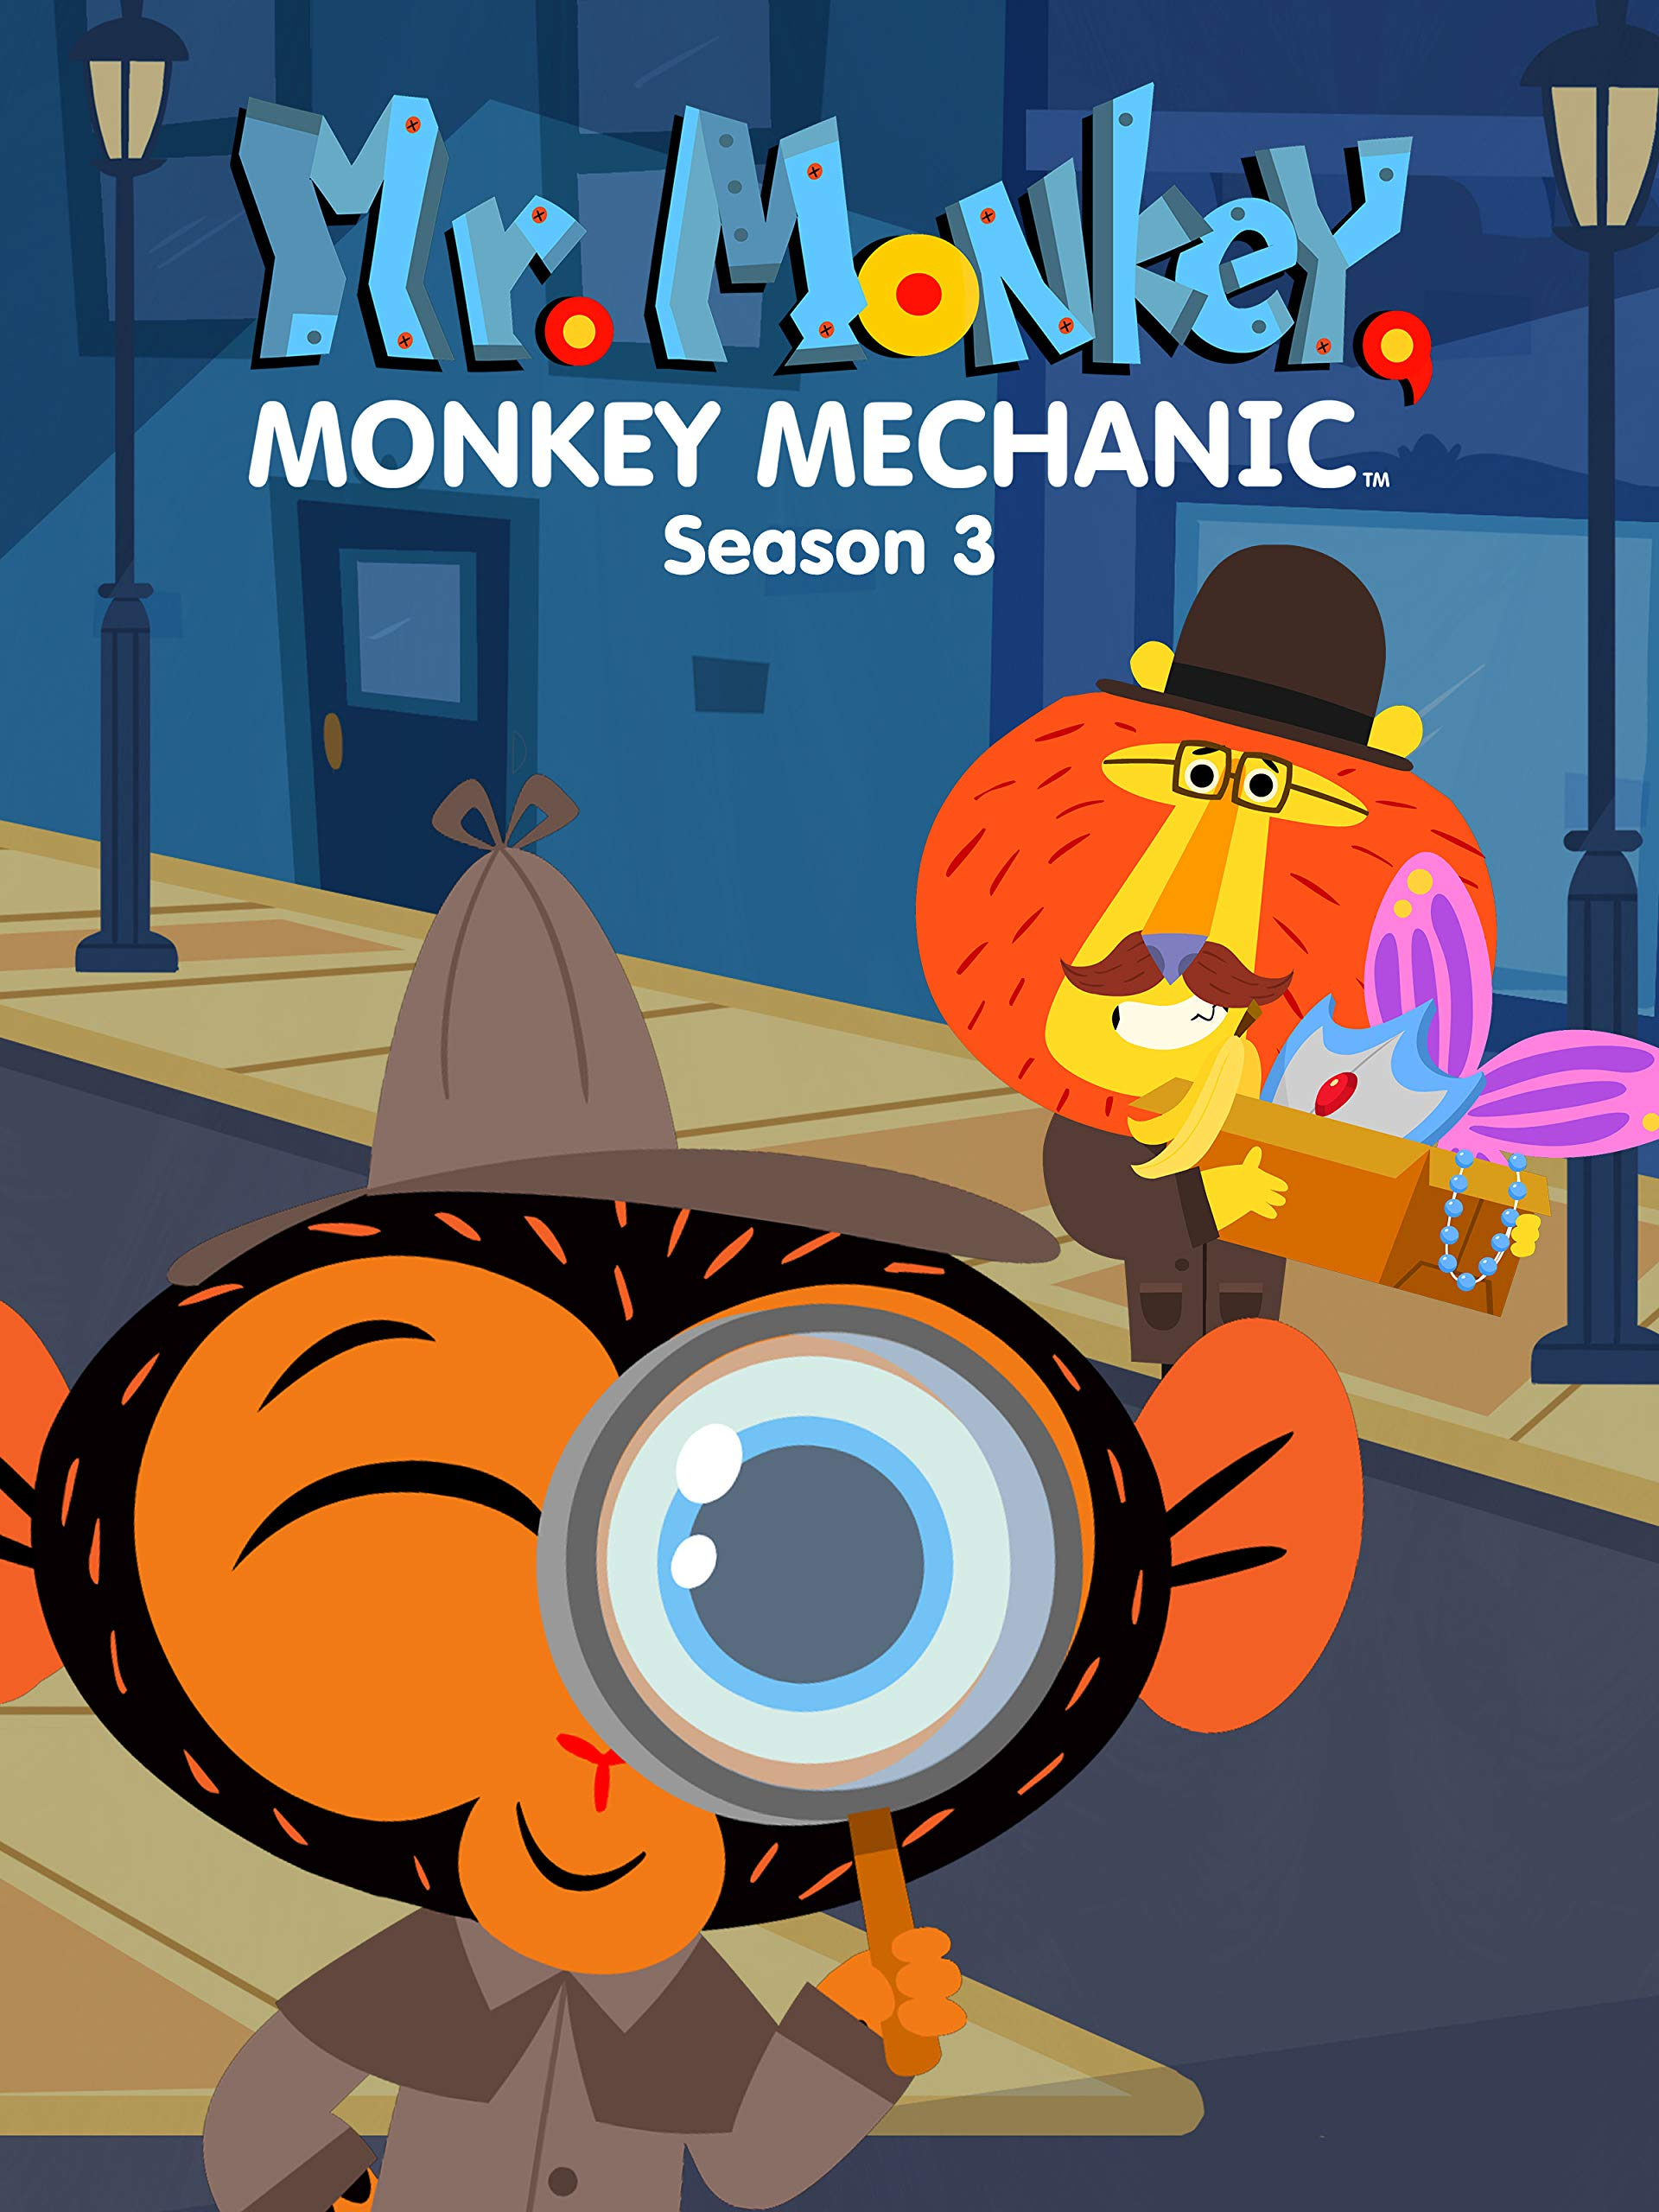 Mr. Monkey, Monkey Mechanic - Season 3